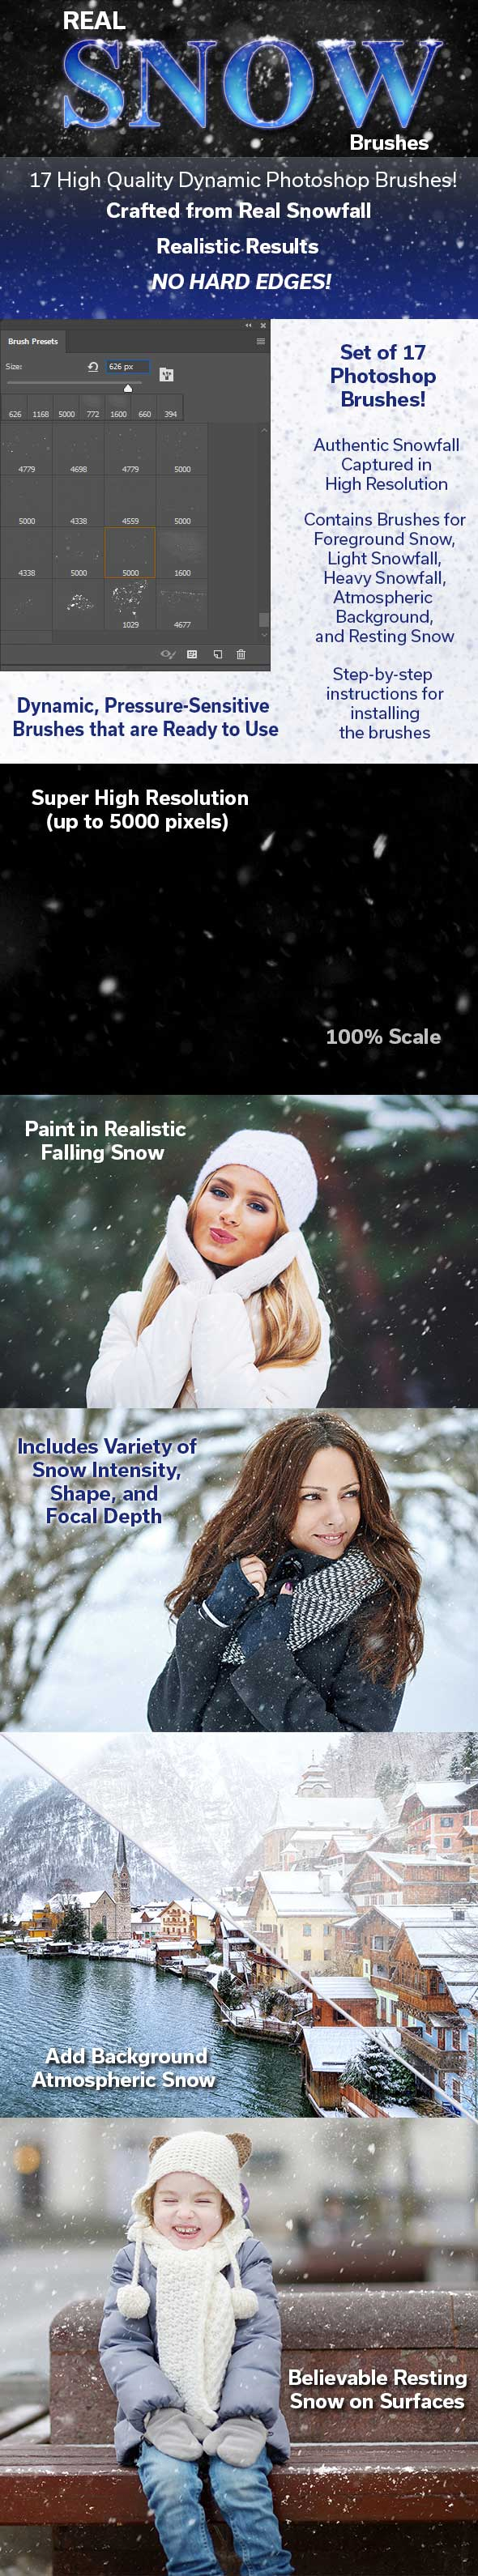 Real Snow Photoshop Brushes - Miscellaneous Brushes